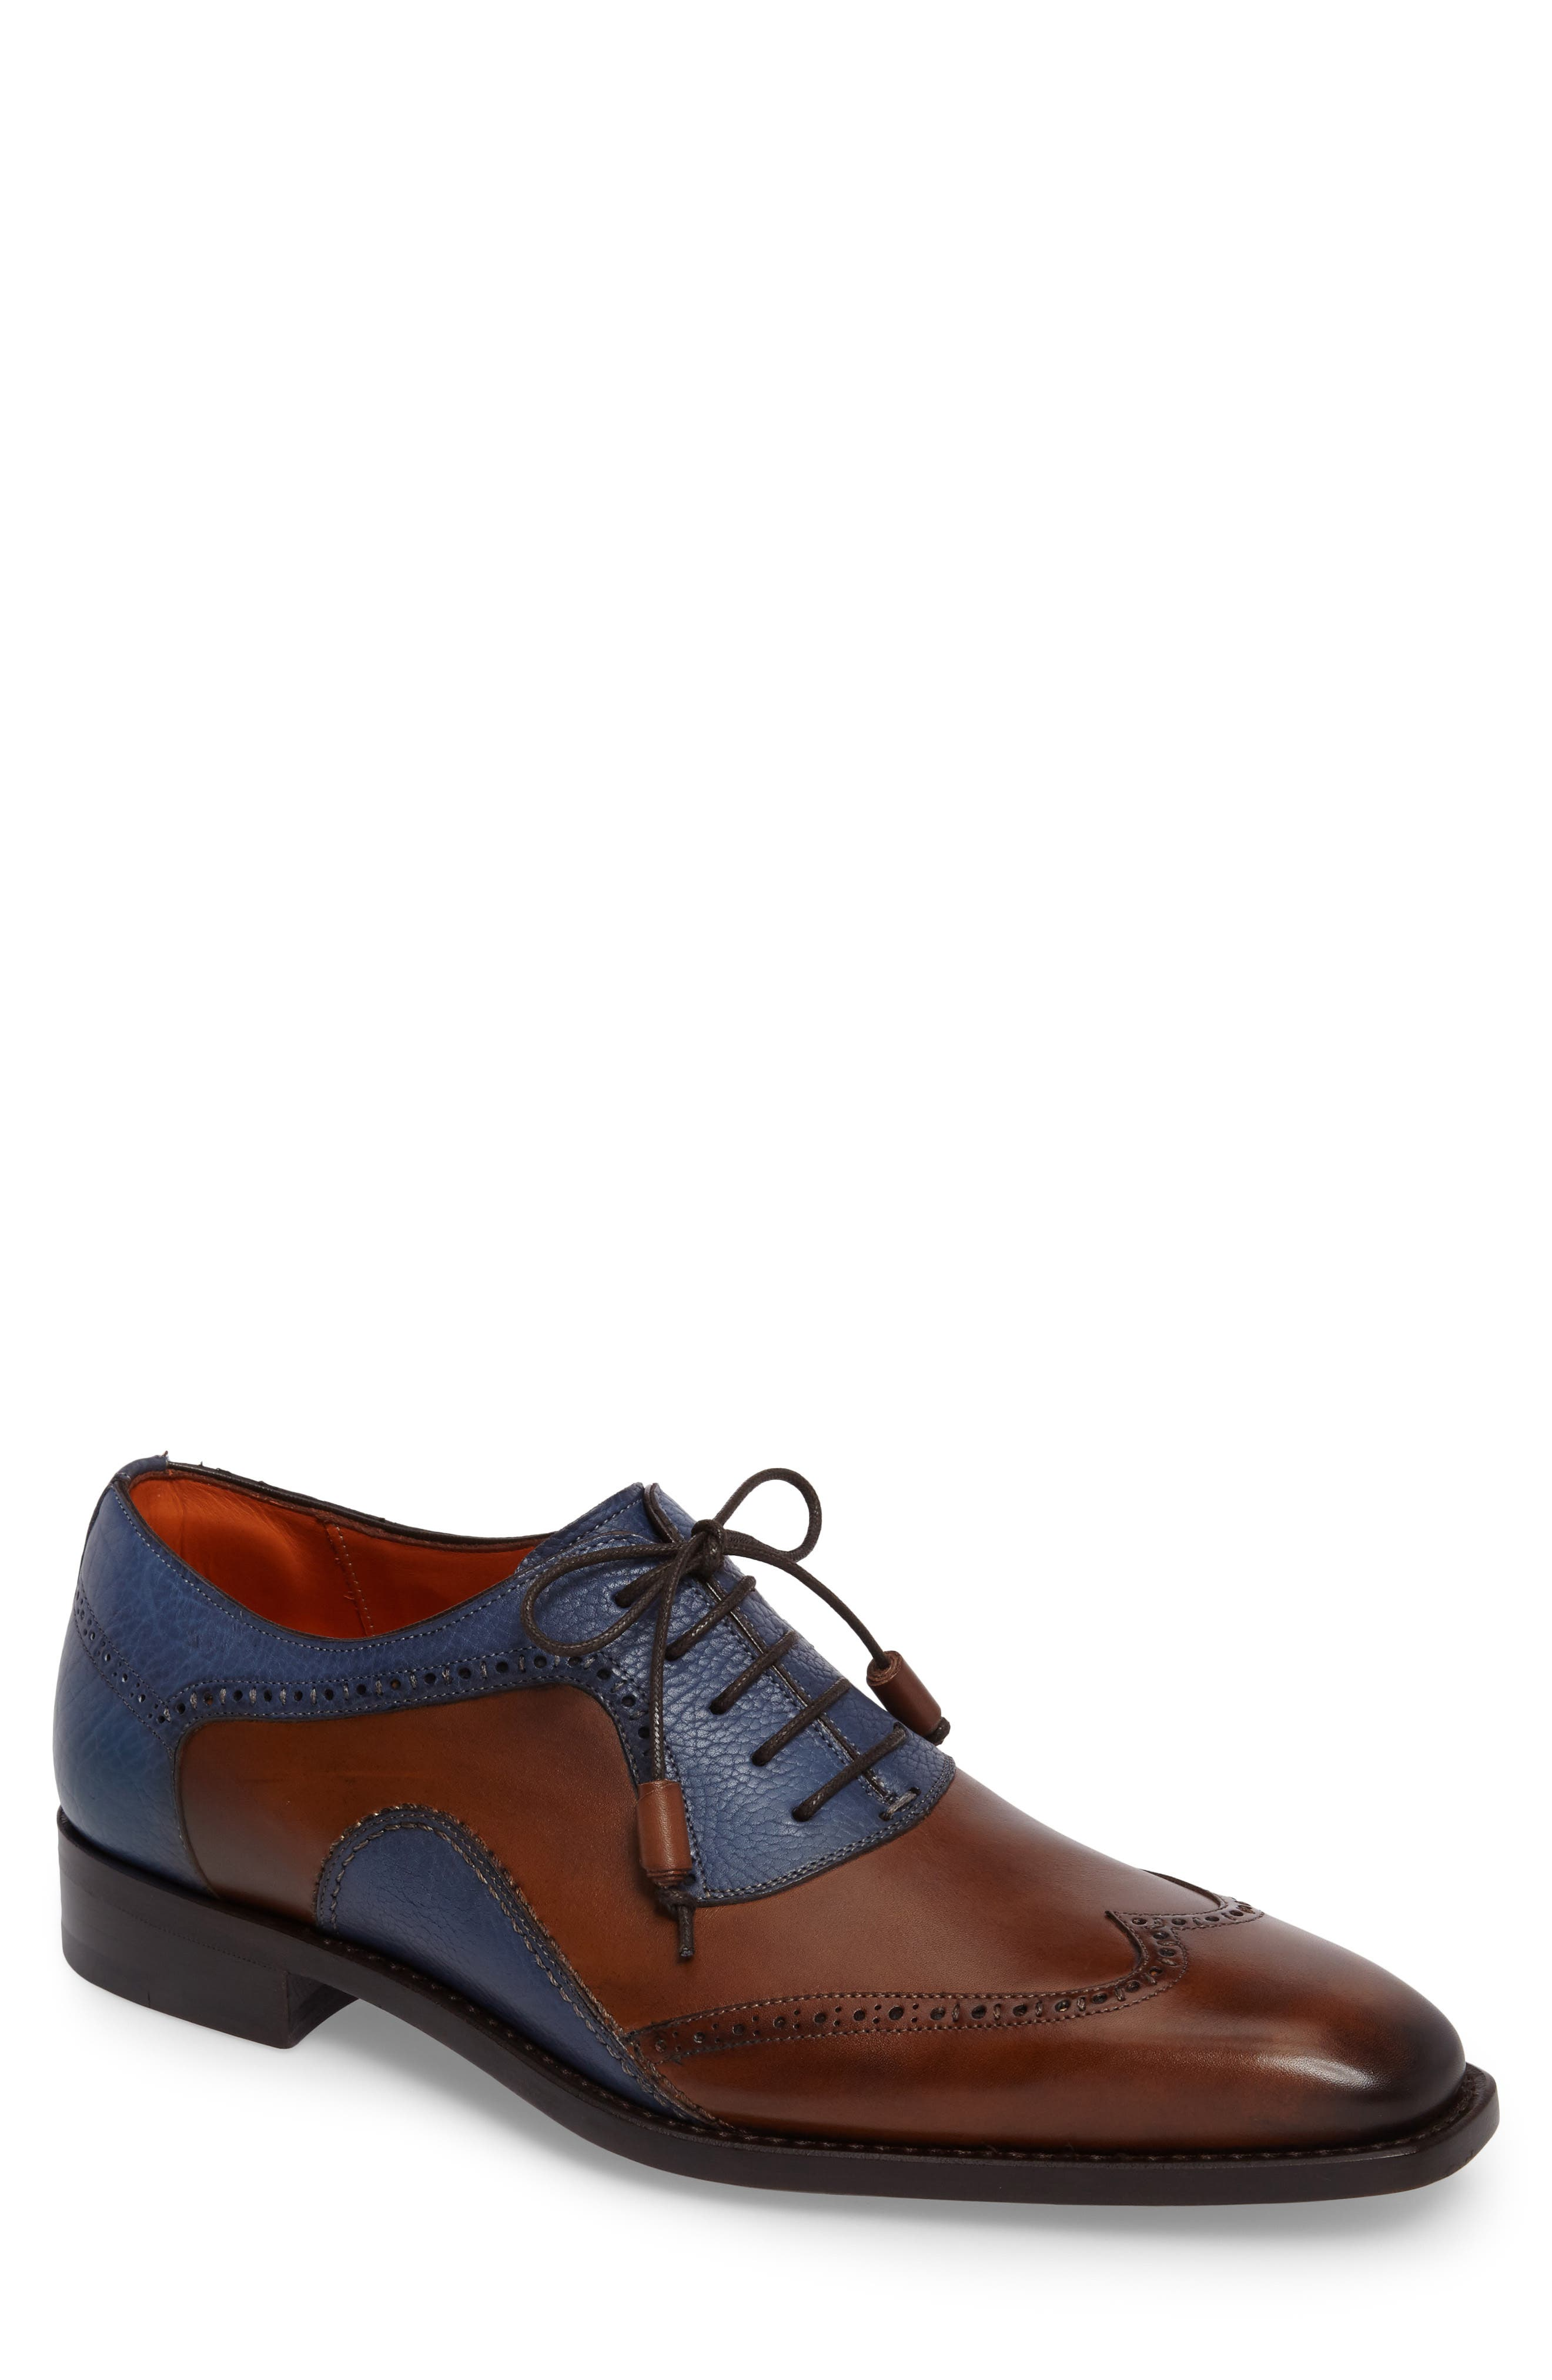 Conil Wingtip,                             Main thumbnail 1, color,                             COGNAC/ BLUE LEATHER